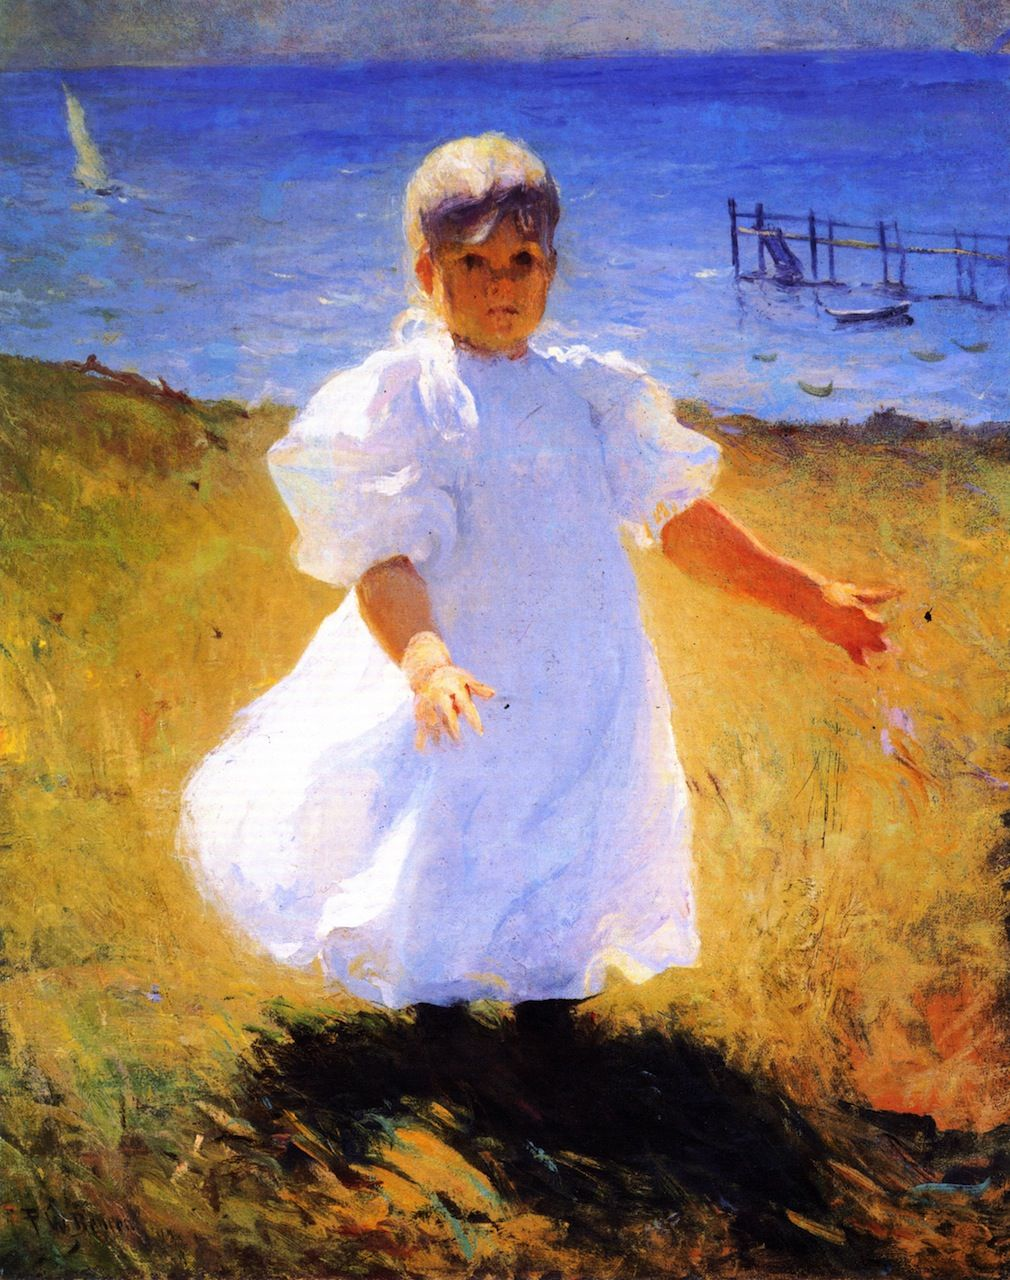 """Child in Sunlight,"" Frank Benson, 1899, Oil on canvas, 30 x 24.13"", Private collection."